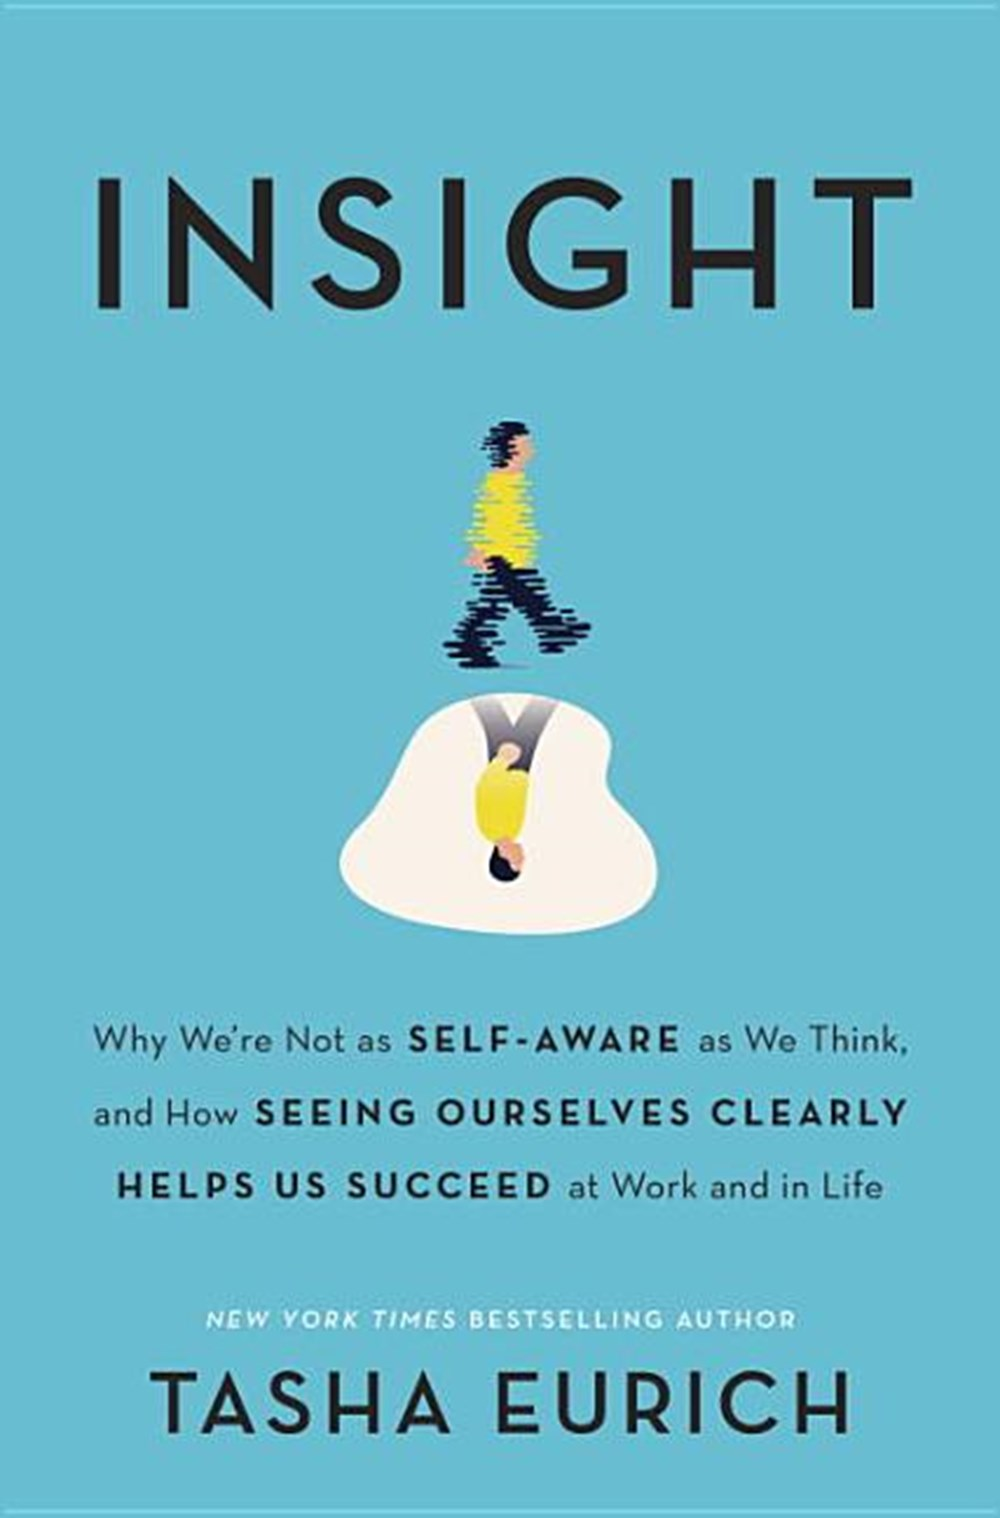 Insight Why We're Not as Self-Aware as We Think, and How Seeing Ourselves Clearly Helps Us Succeed a